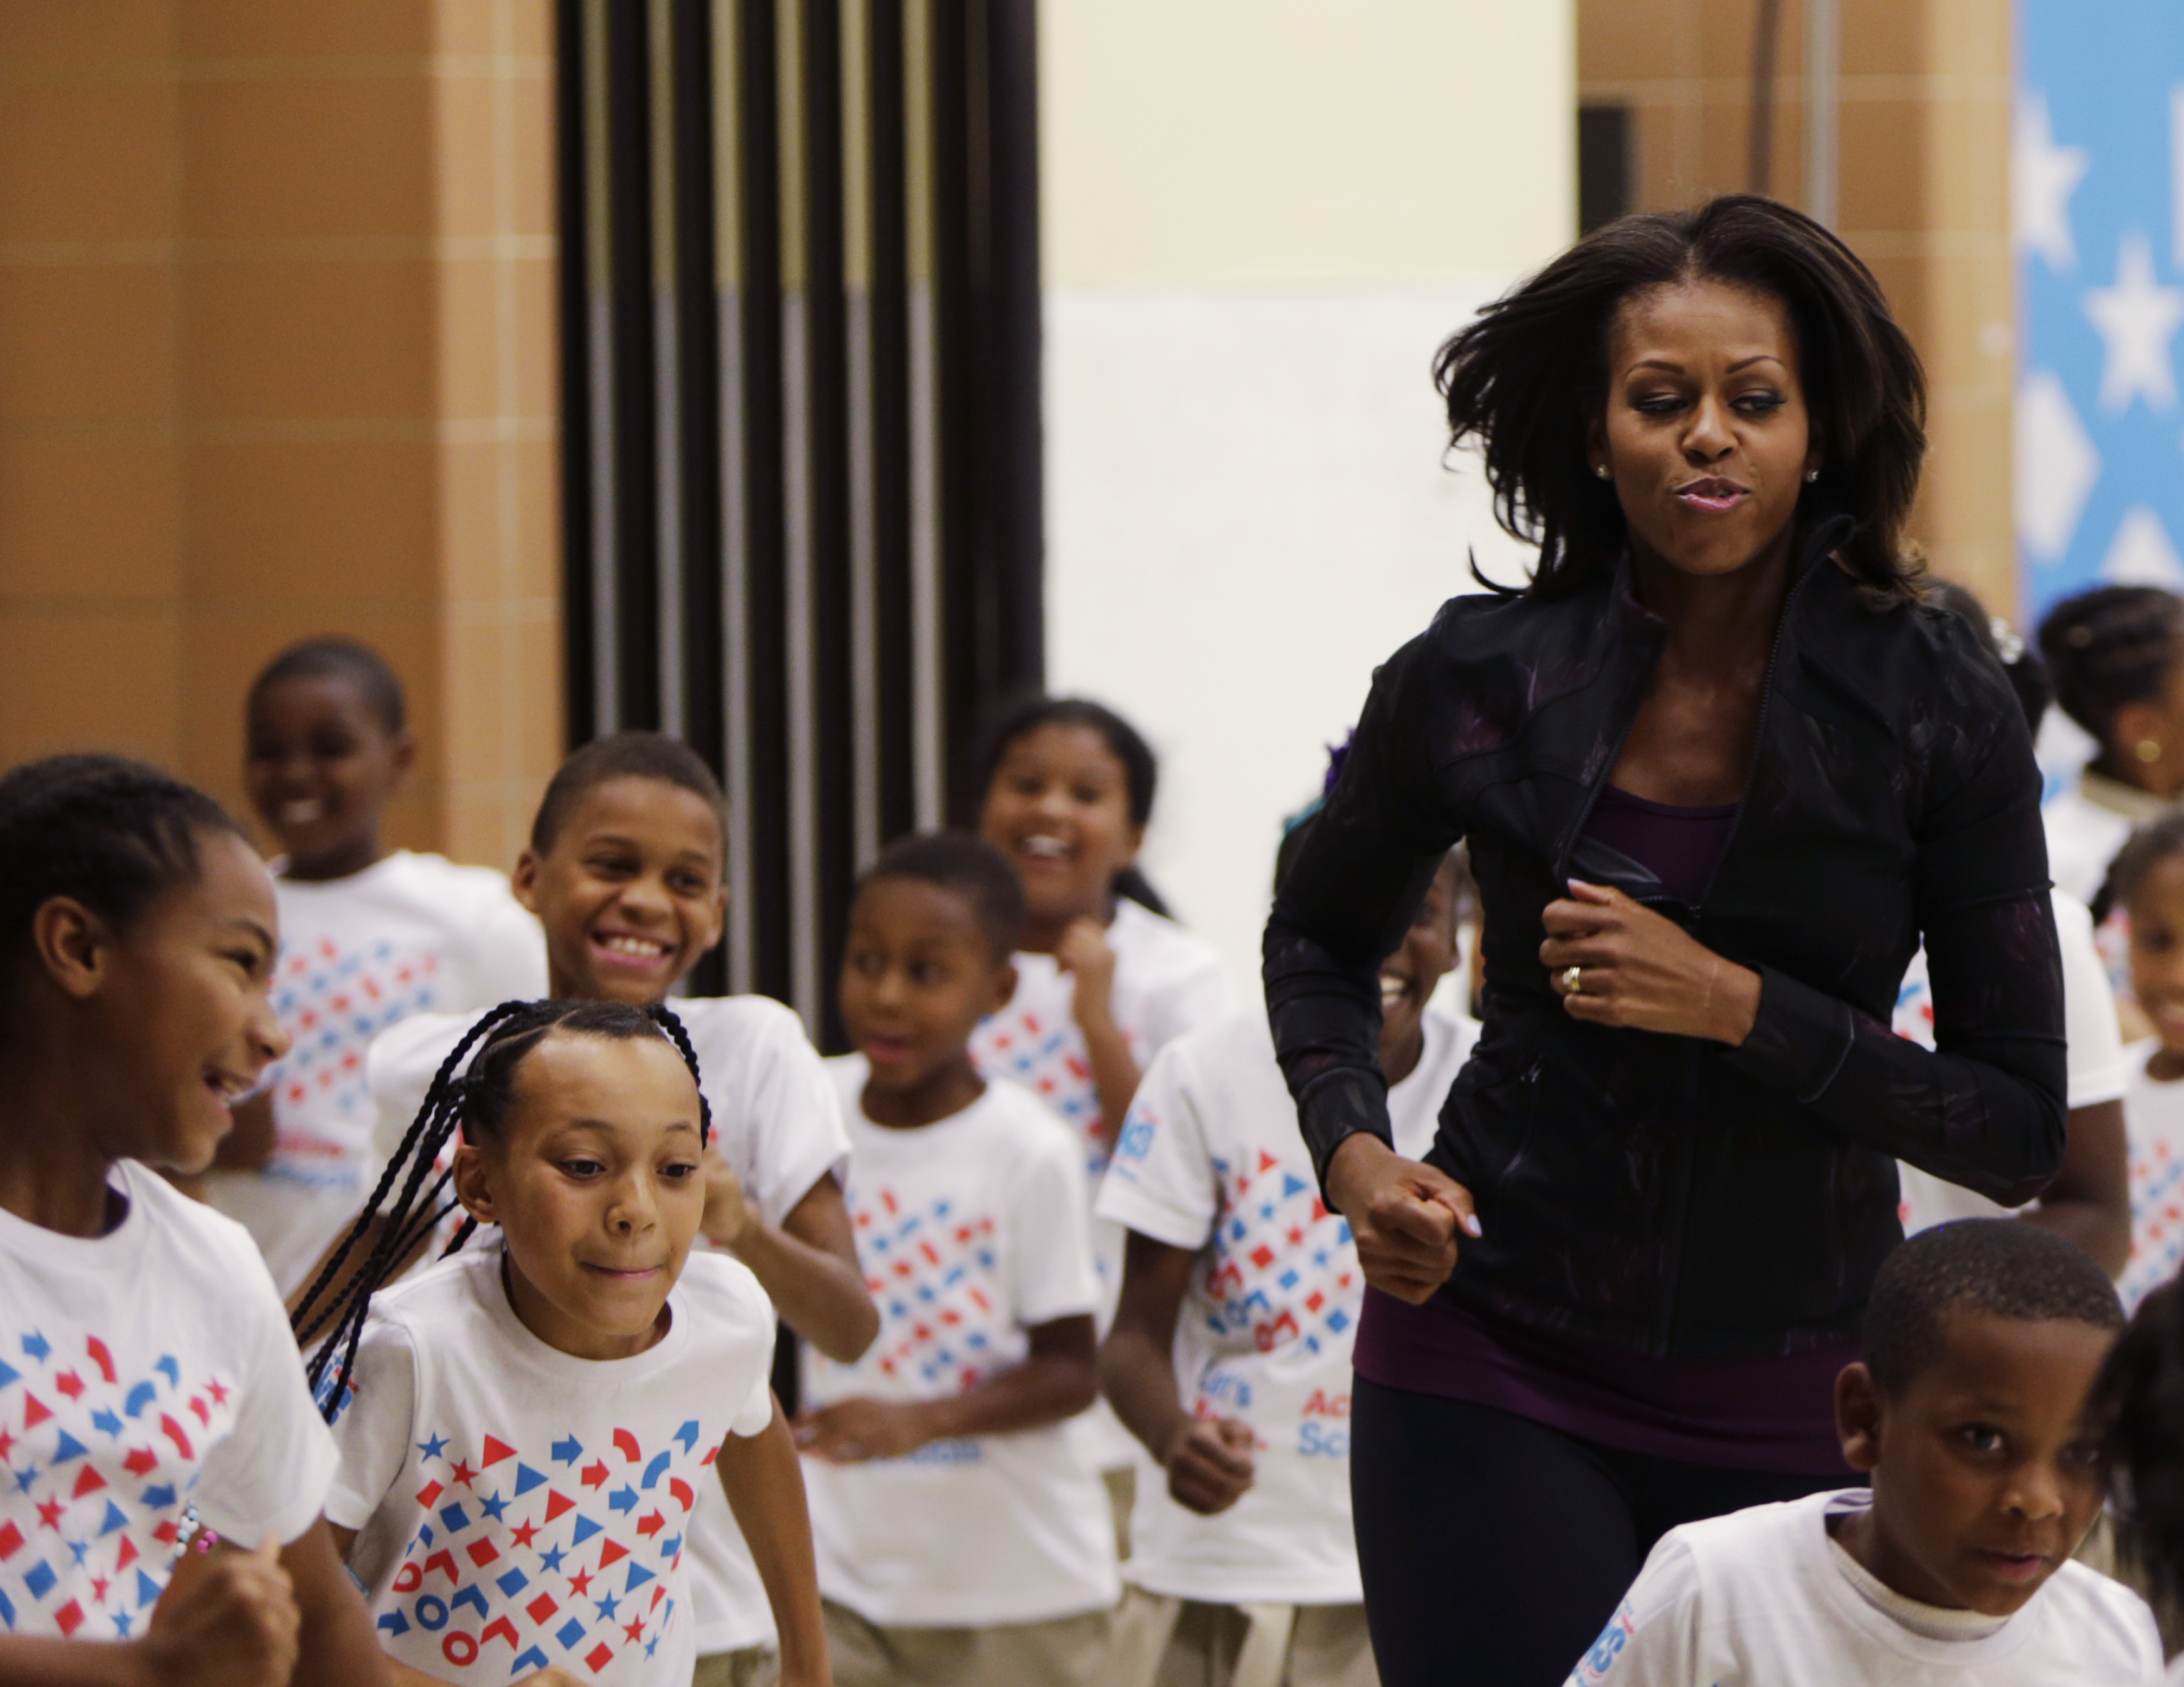 U.S. First Lady Michelle Obama jogs with children at a back-to-school event at Orr Elementary School in Washington on September 6, 2013.